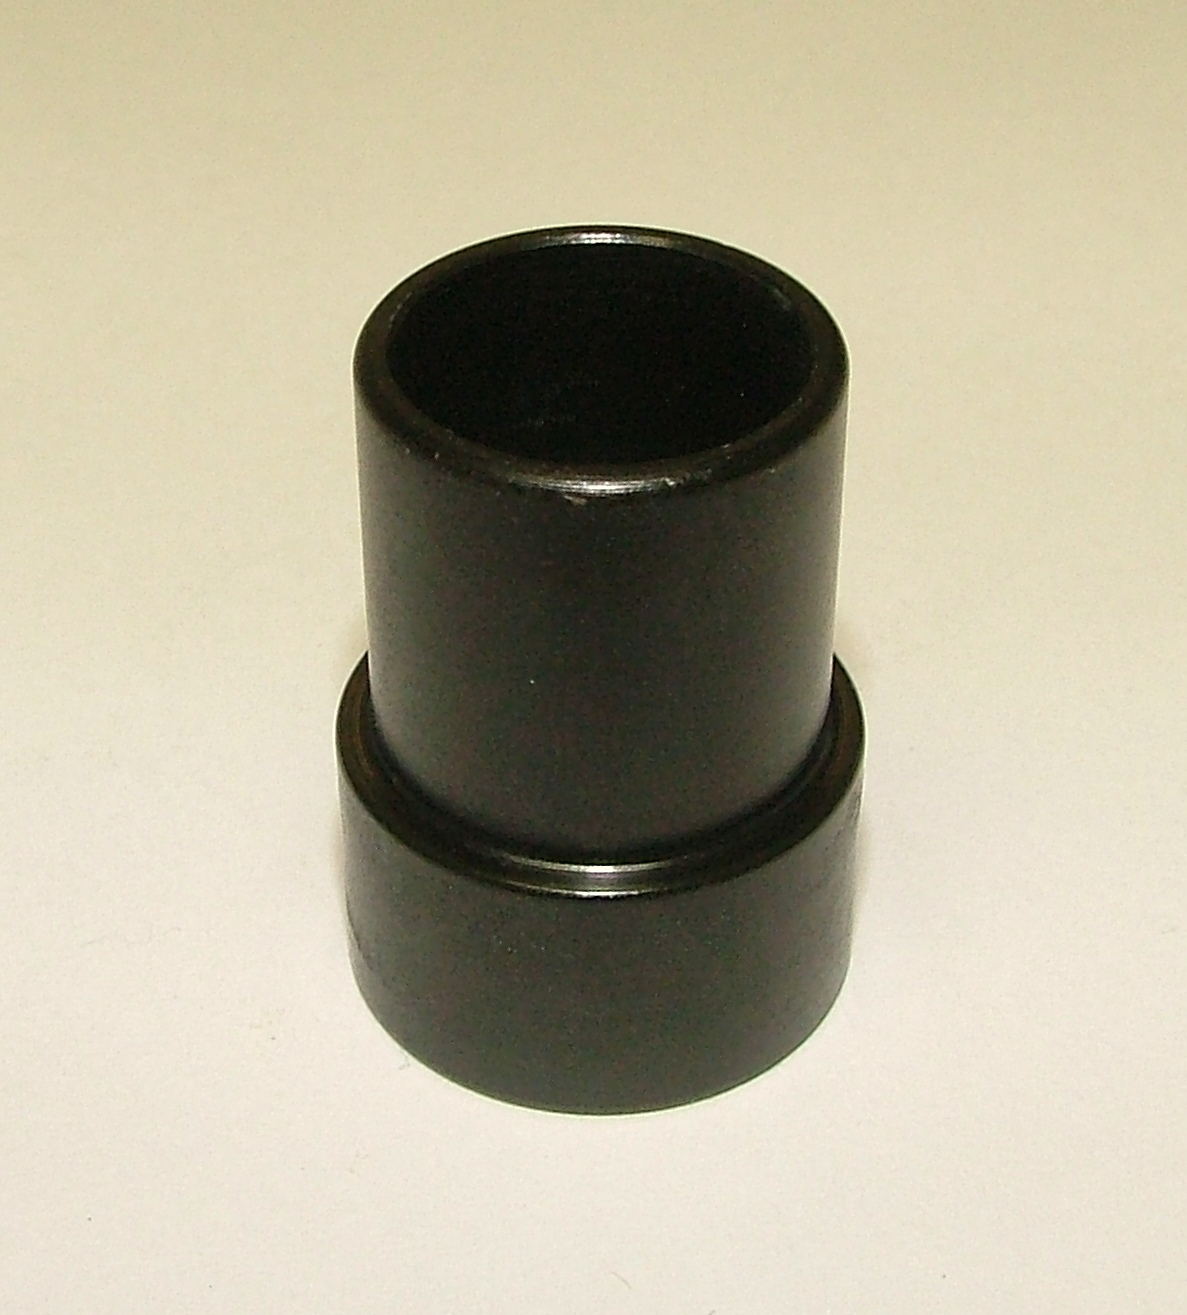 3/4 Idler Arm Bushing (Reducer Sleeve)